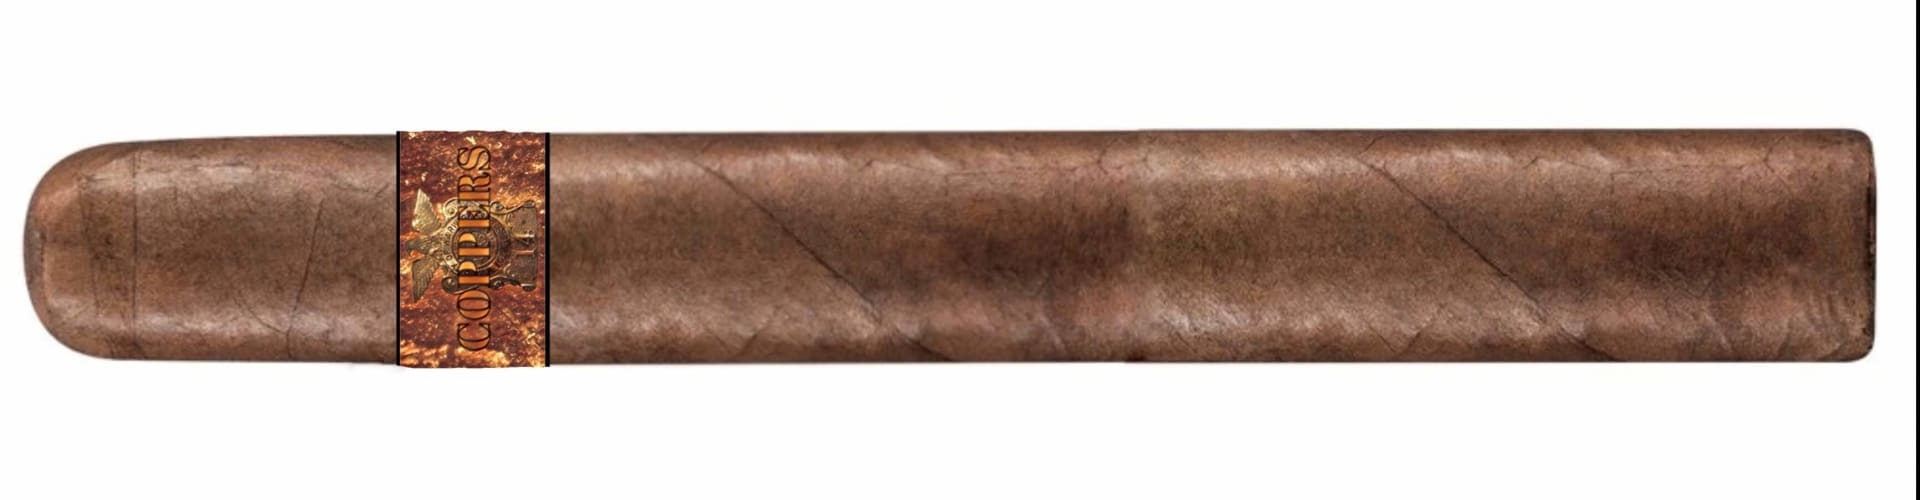 Cigar News: Protocol Announces Coppers for Vintage Cigar Lounge and Club Featured Image